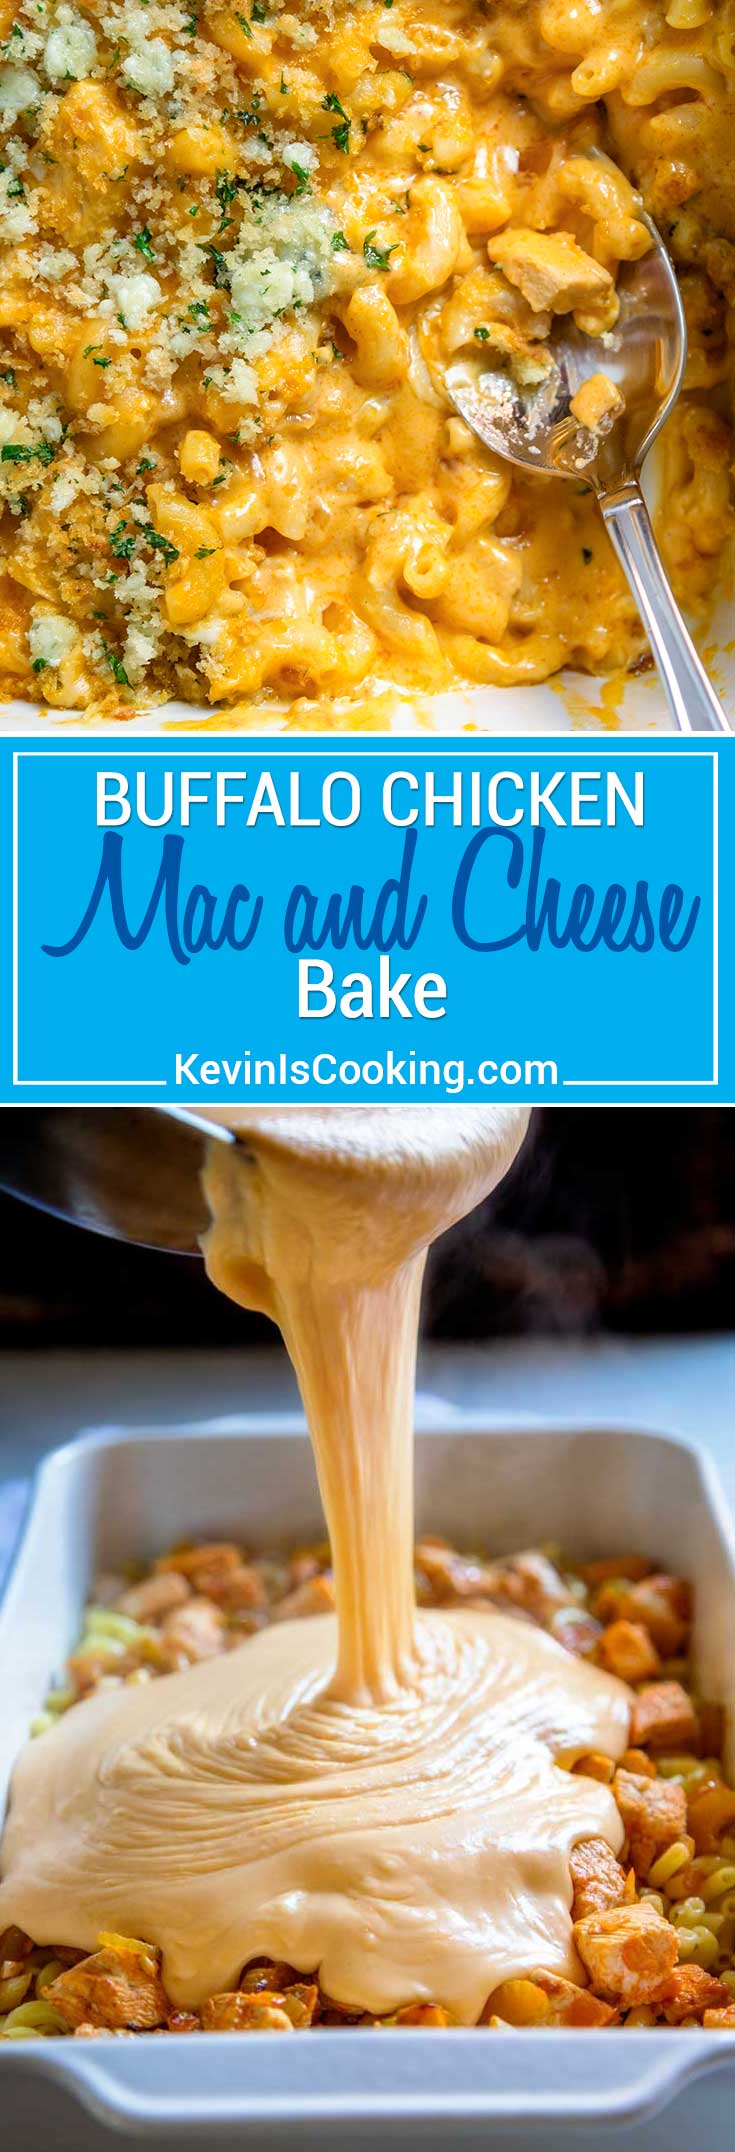 This Buffalo Chicken Mac and Cheese is super creamy with 3 cheeses, lots of chopped Buffalo sauced chicken and a fantastic bleu cheese breadcrumb topping baked to a golden brown. This feeds a crowd, or halve it for a mid-week dinner, too.